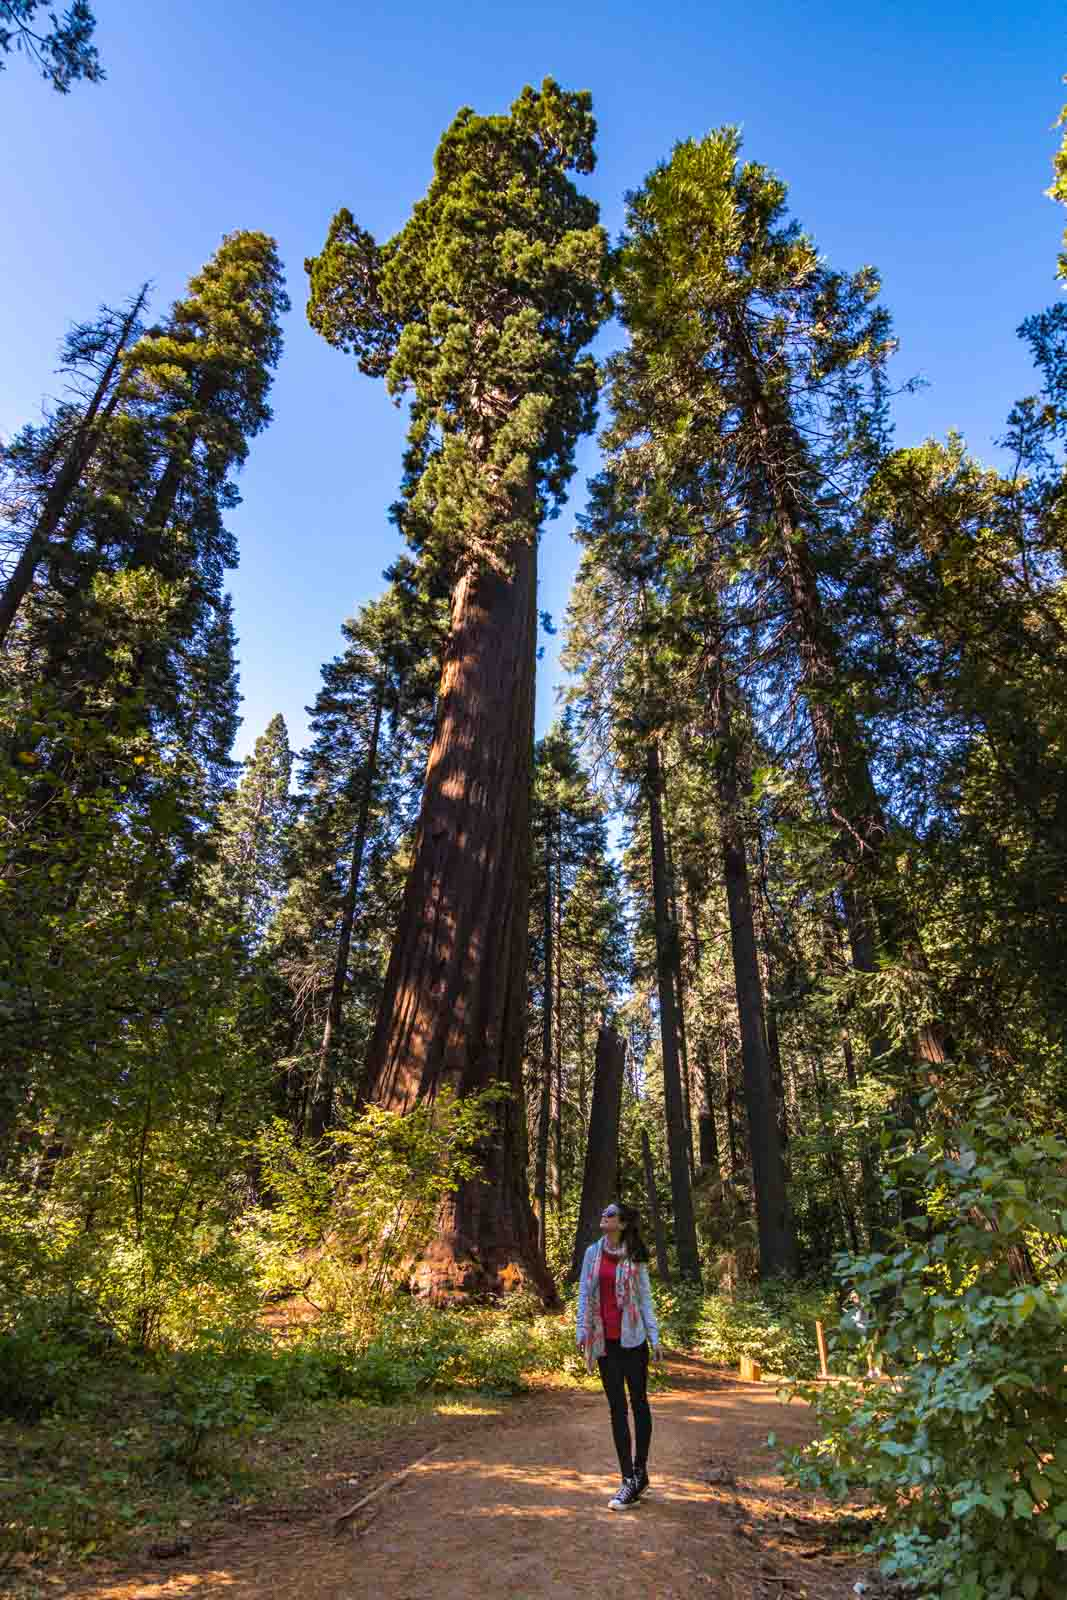 Big trees is yet another thing that should be added to your Northern California road trip